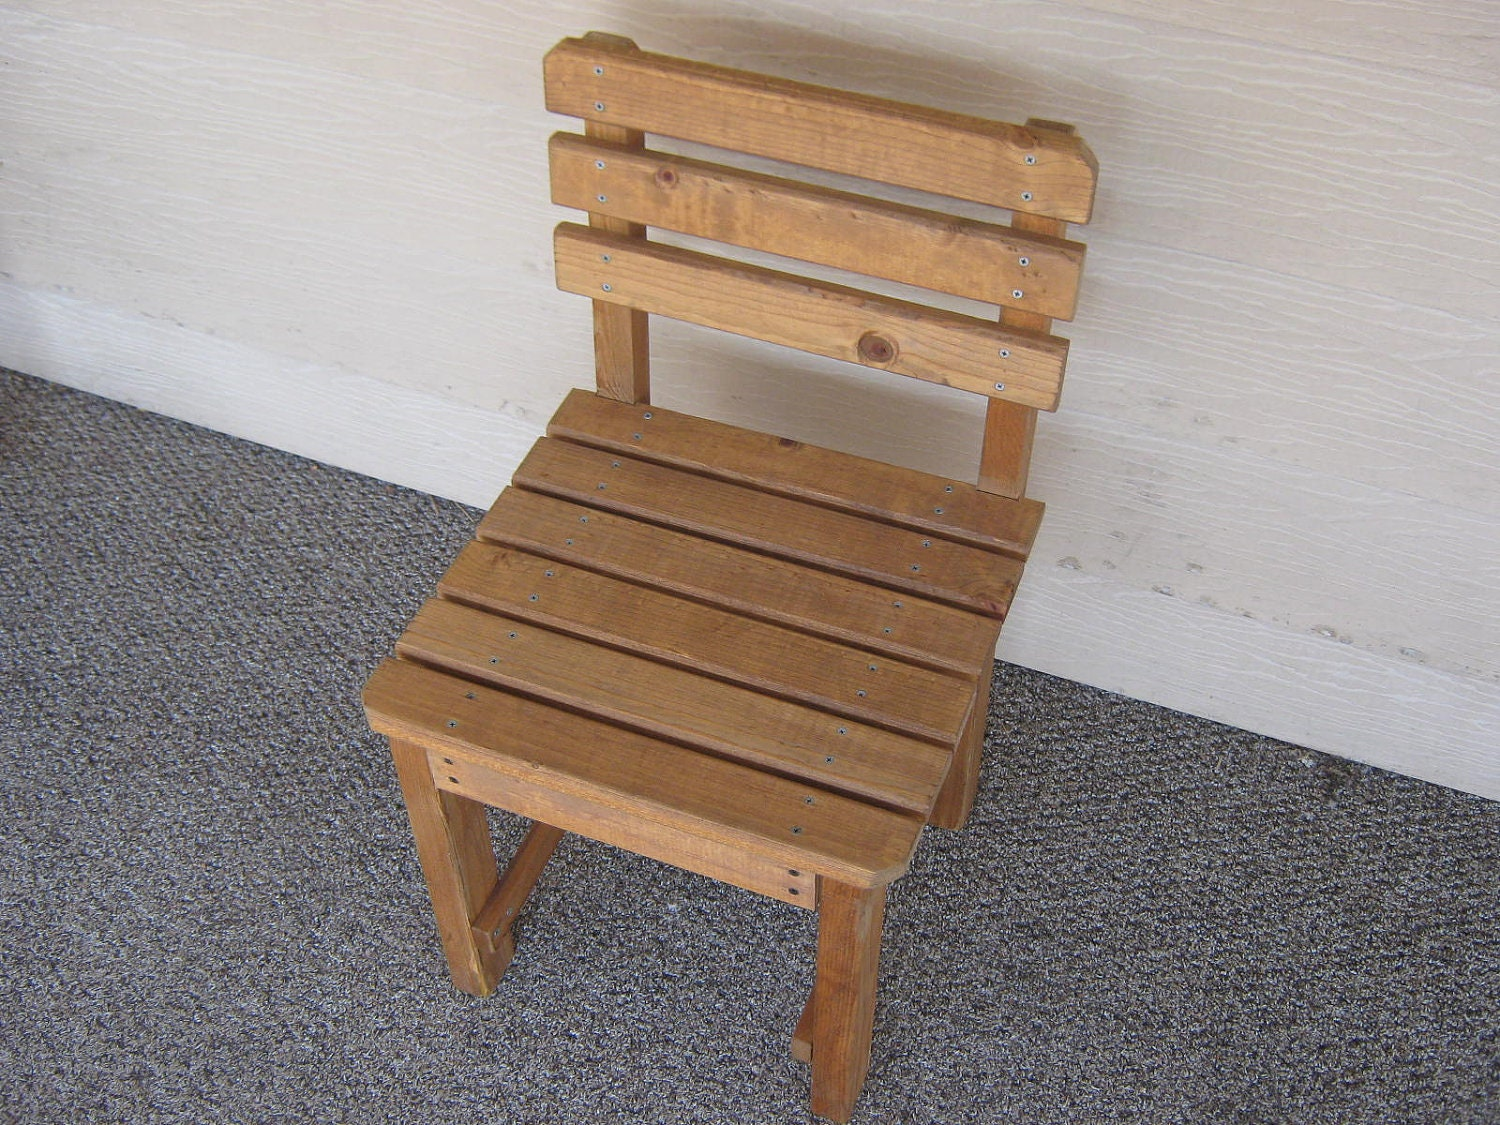 Diy Outdoor Wood Chairs Online Woodworking Plans